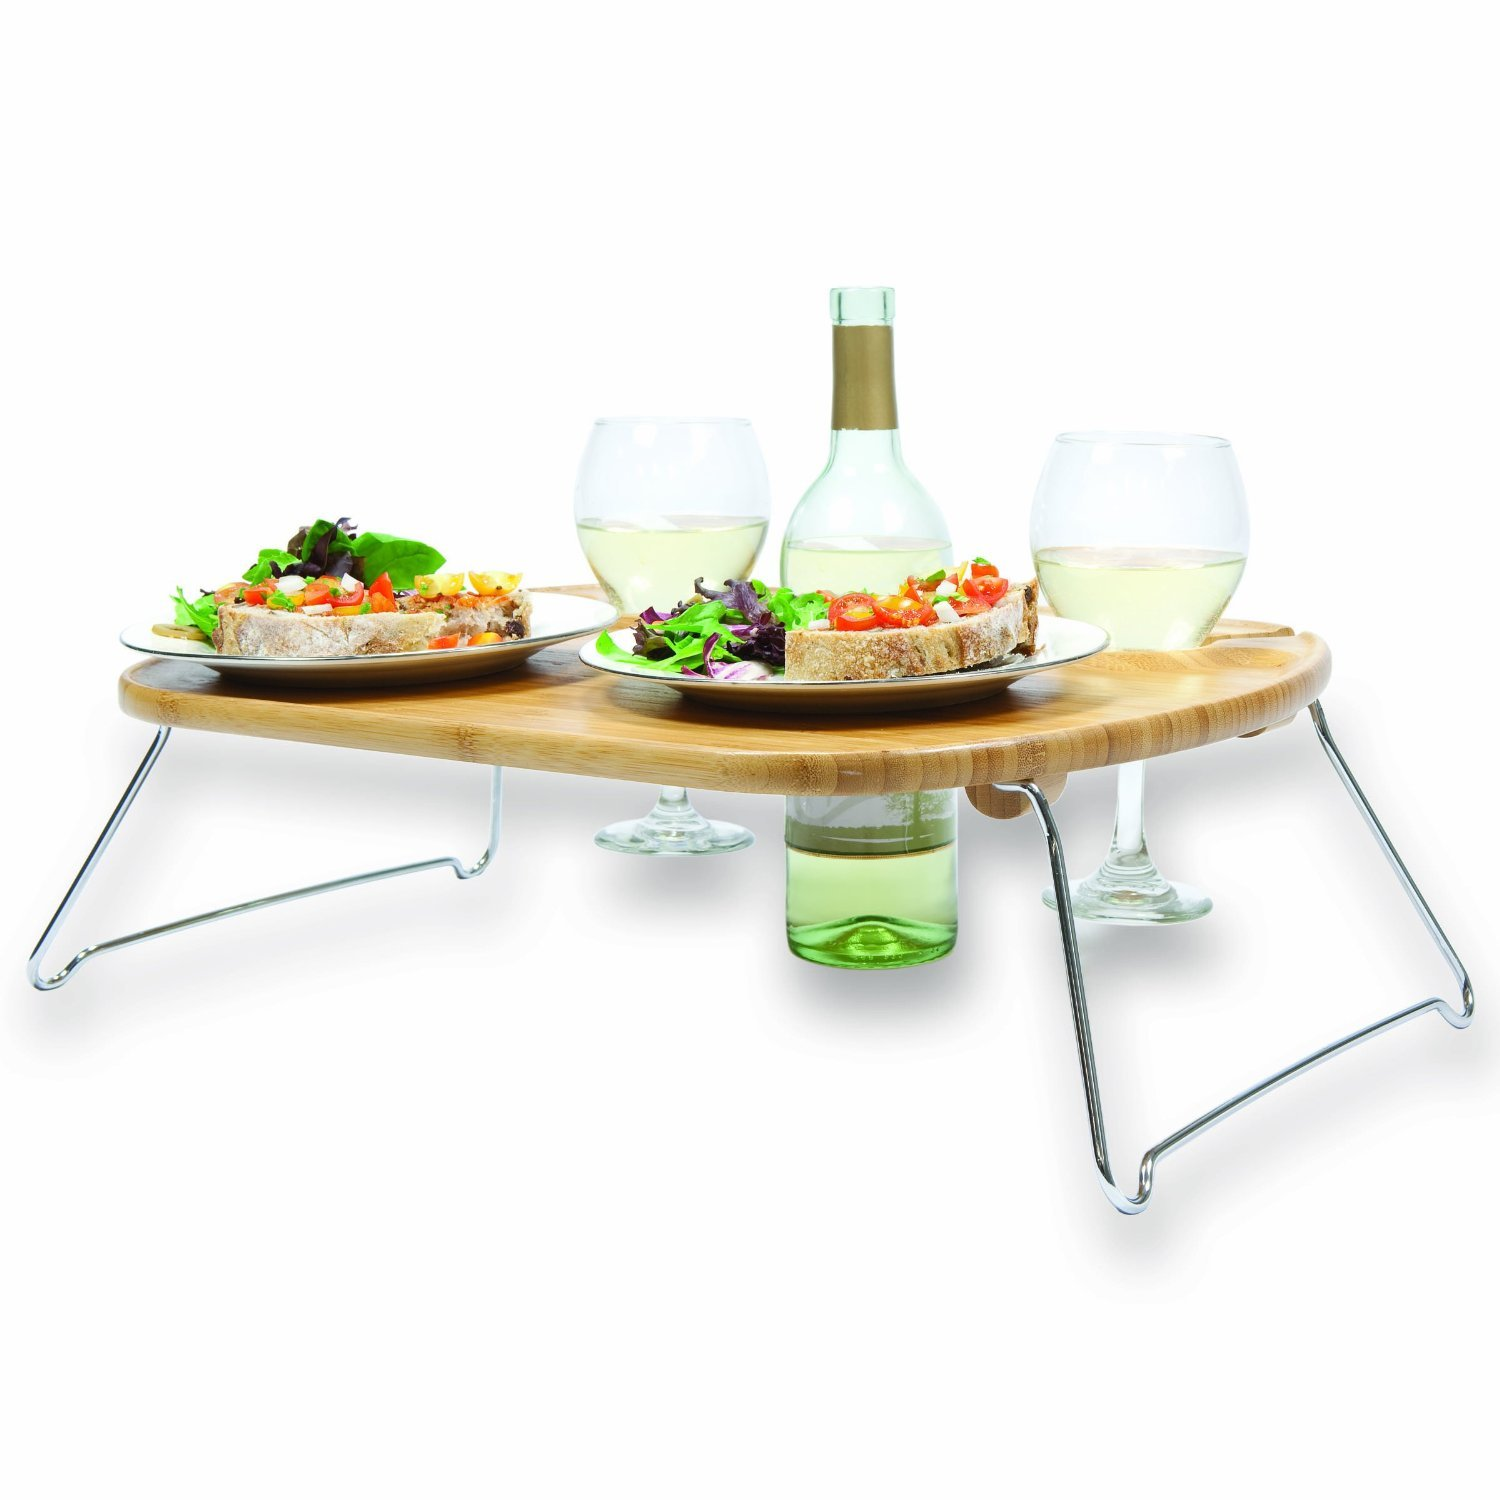 Mesamio Cheese Board and Table - Picnic Time 842-00-505